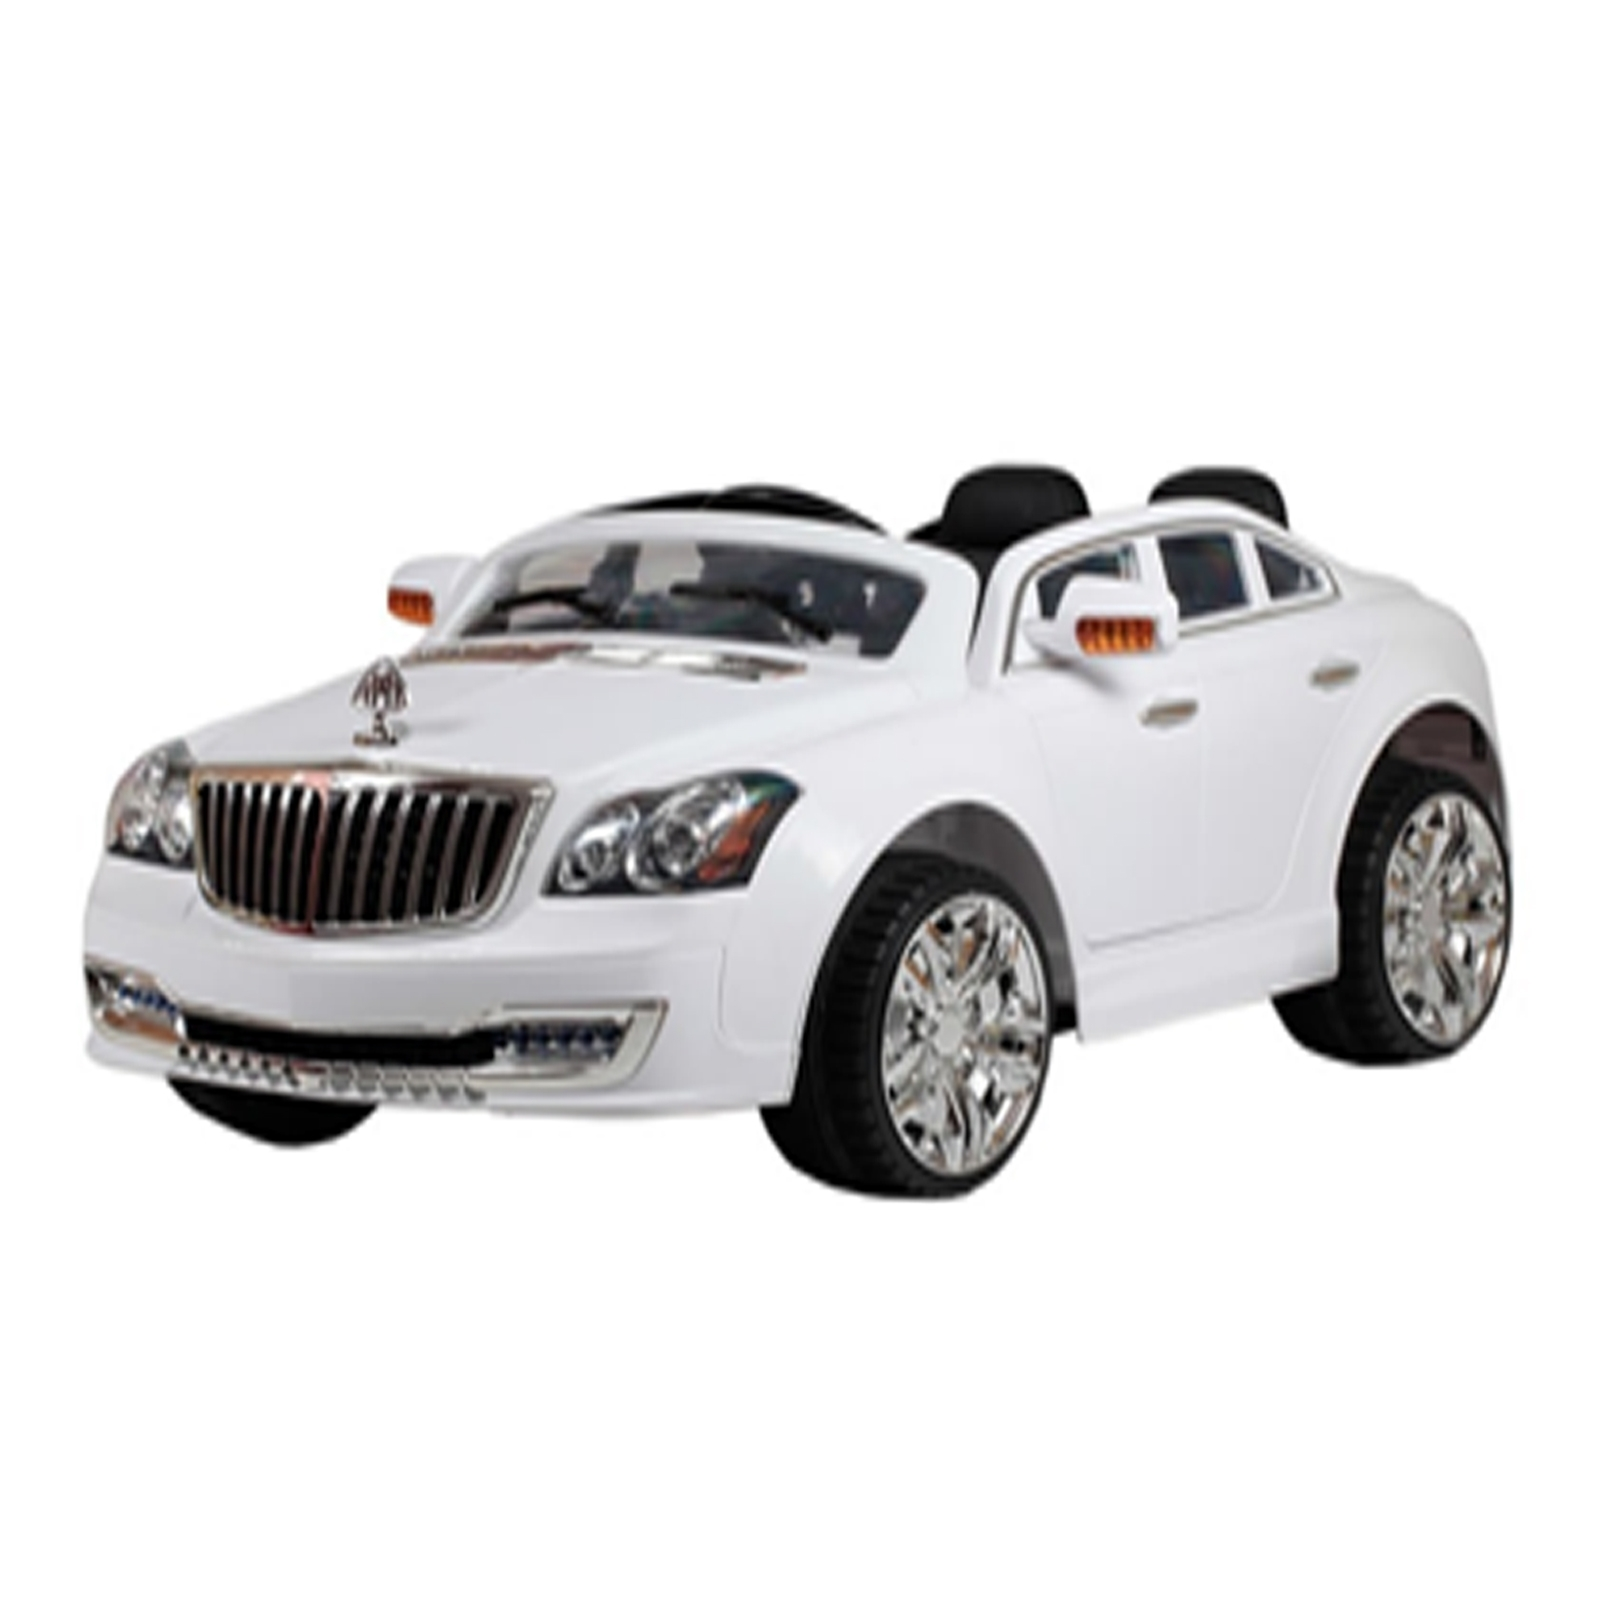 mb luxury 12v kids battery powered ride on car in white